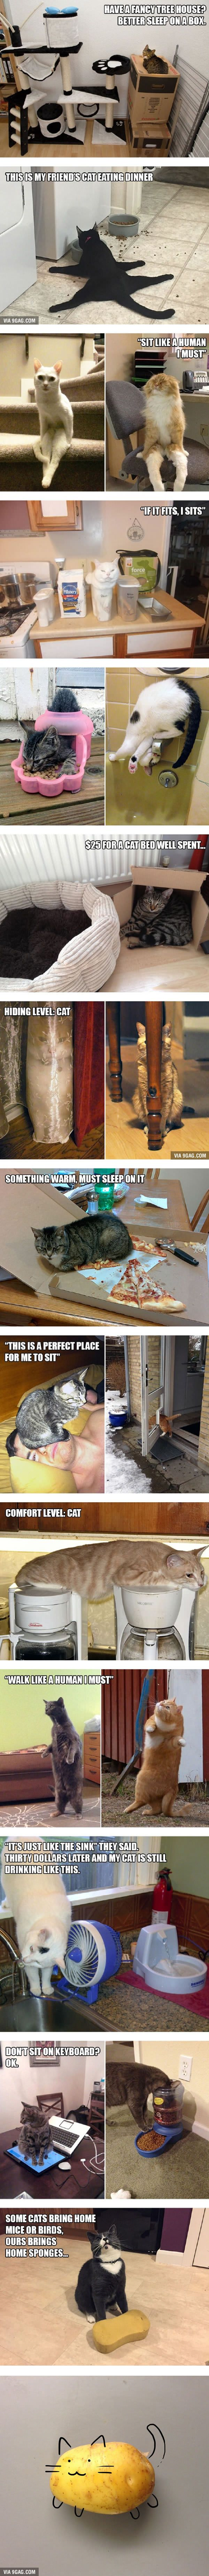 20 Funny Examples of Cat Logic - 9GAG                                                                                                                                                     More